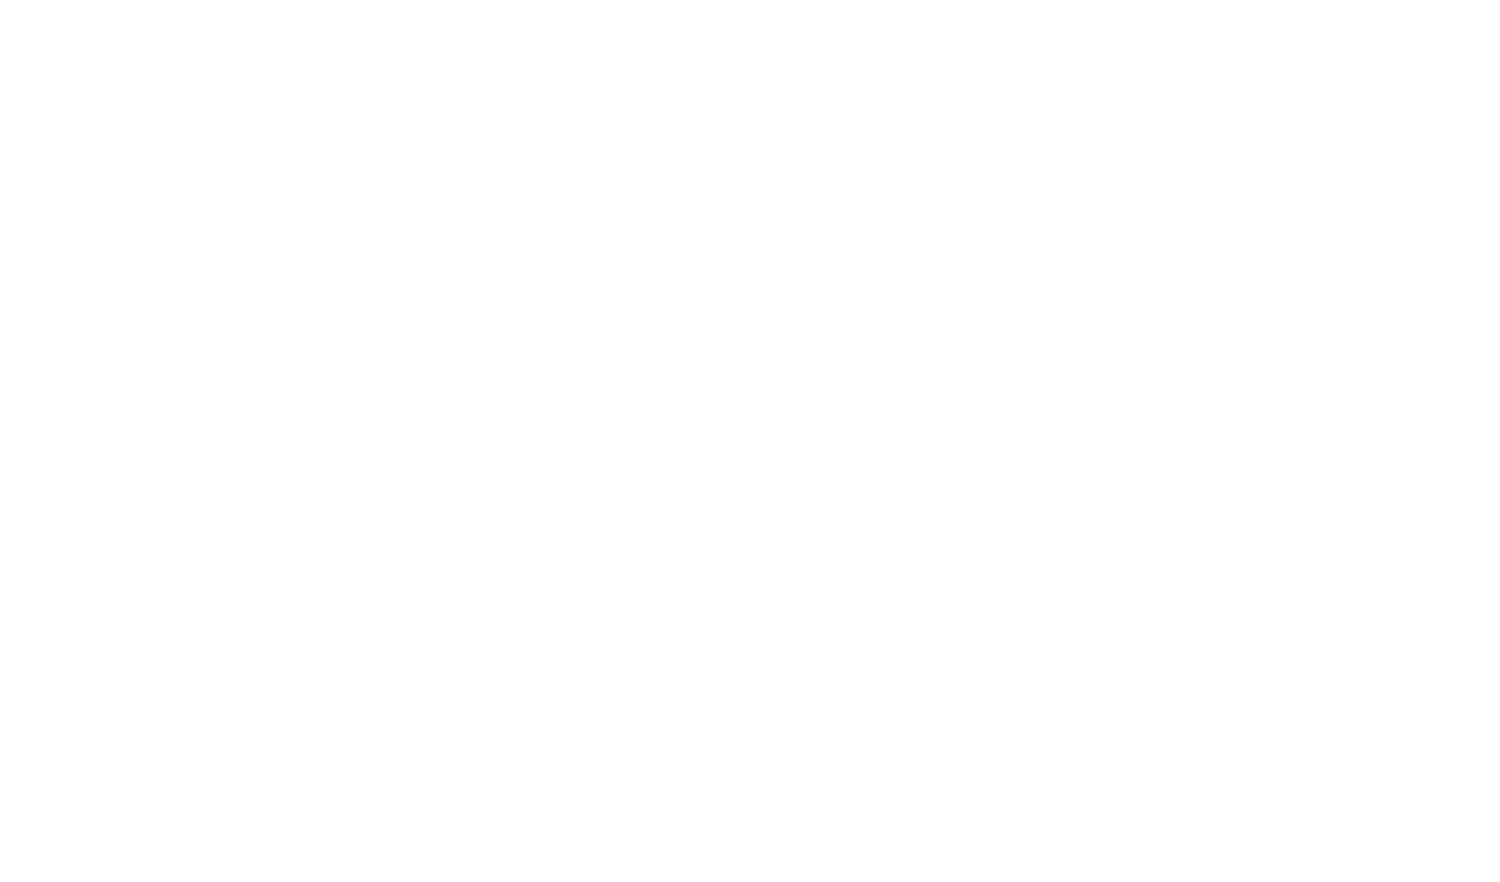 Boldman Bolsh Production, LLC